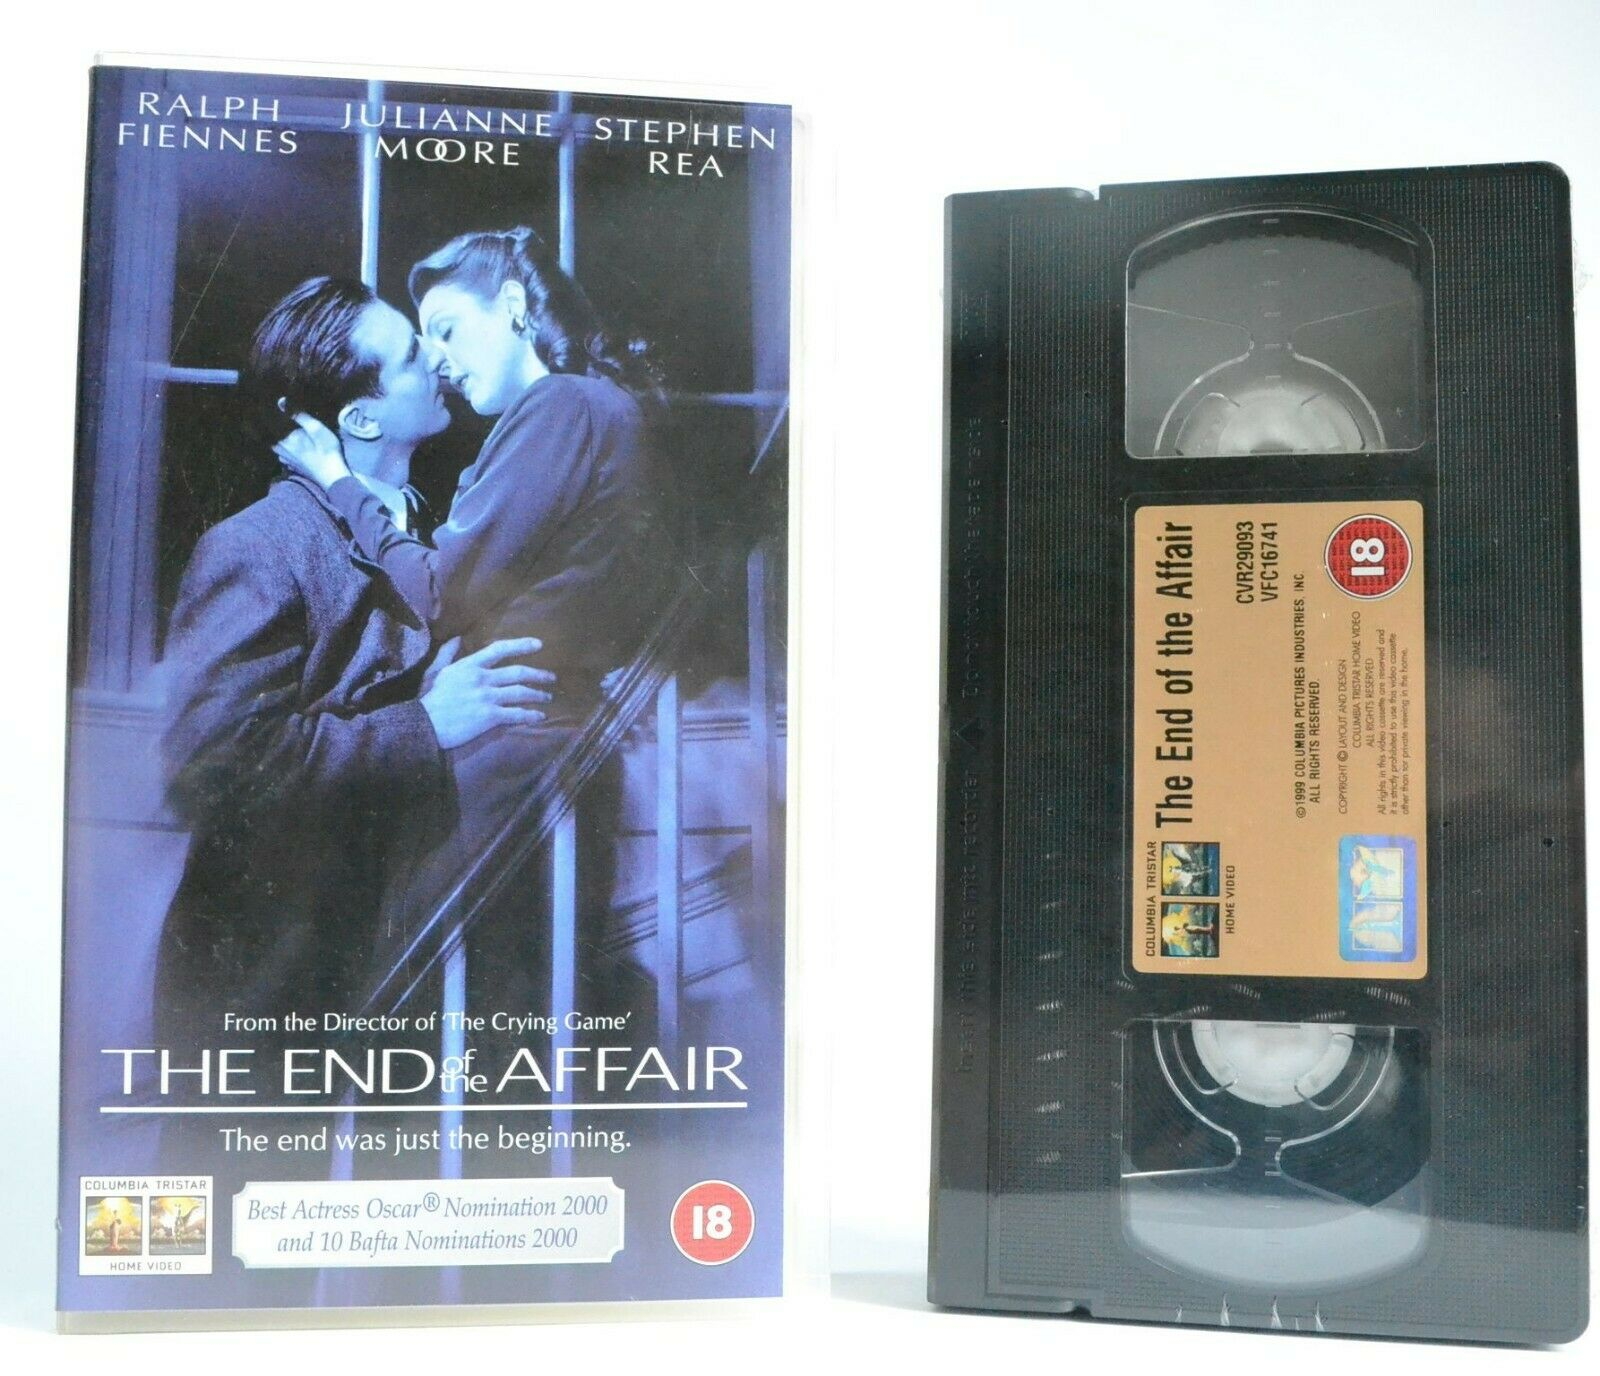 The End Of The Affair (1999): Brand New Seald - Drama - R.Fiennes/J.Moore - VHS